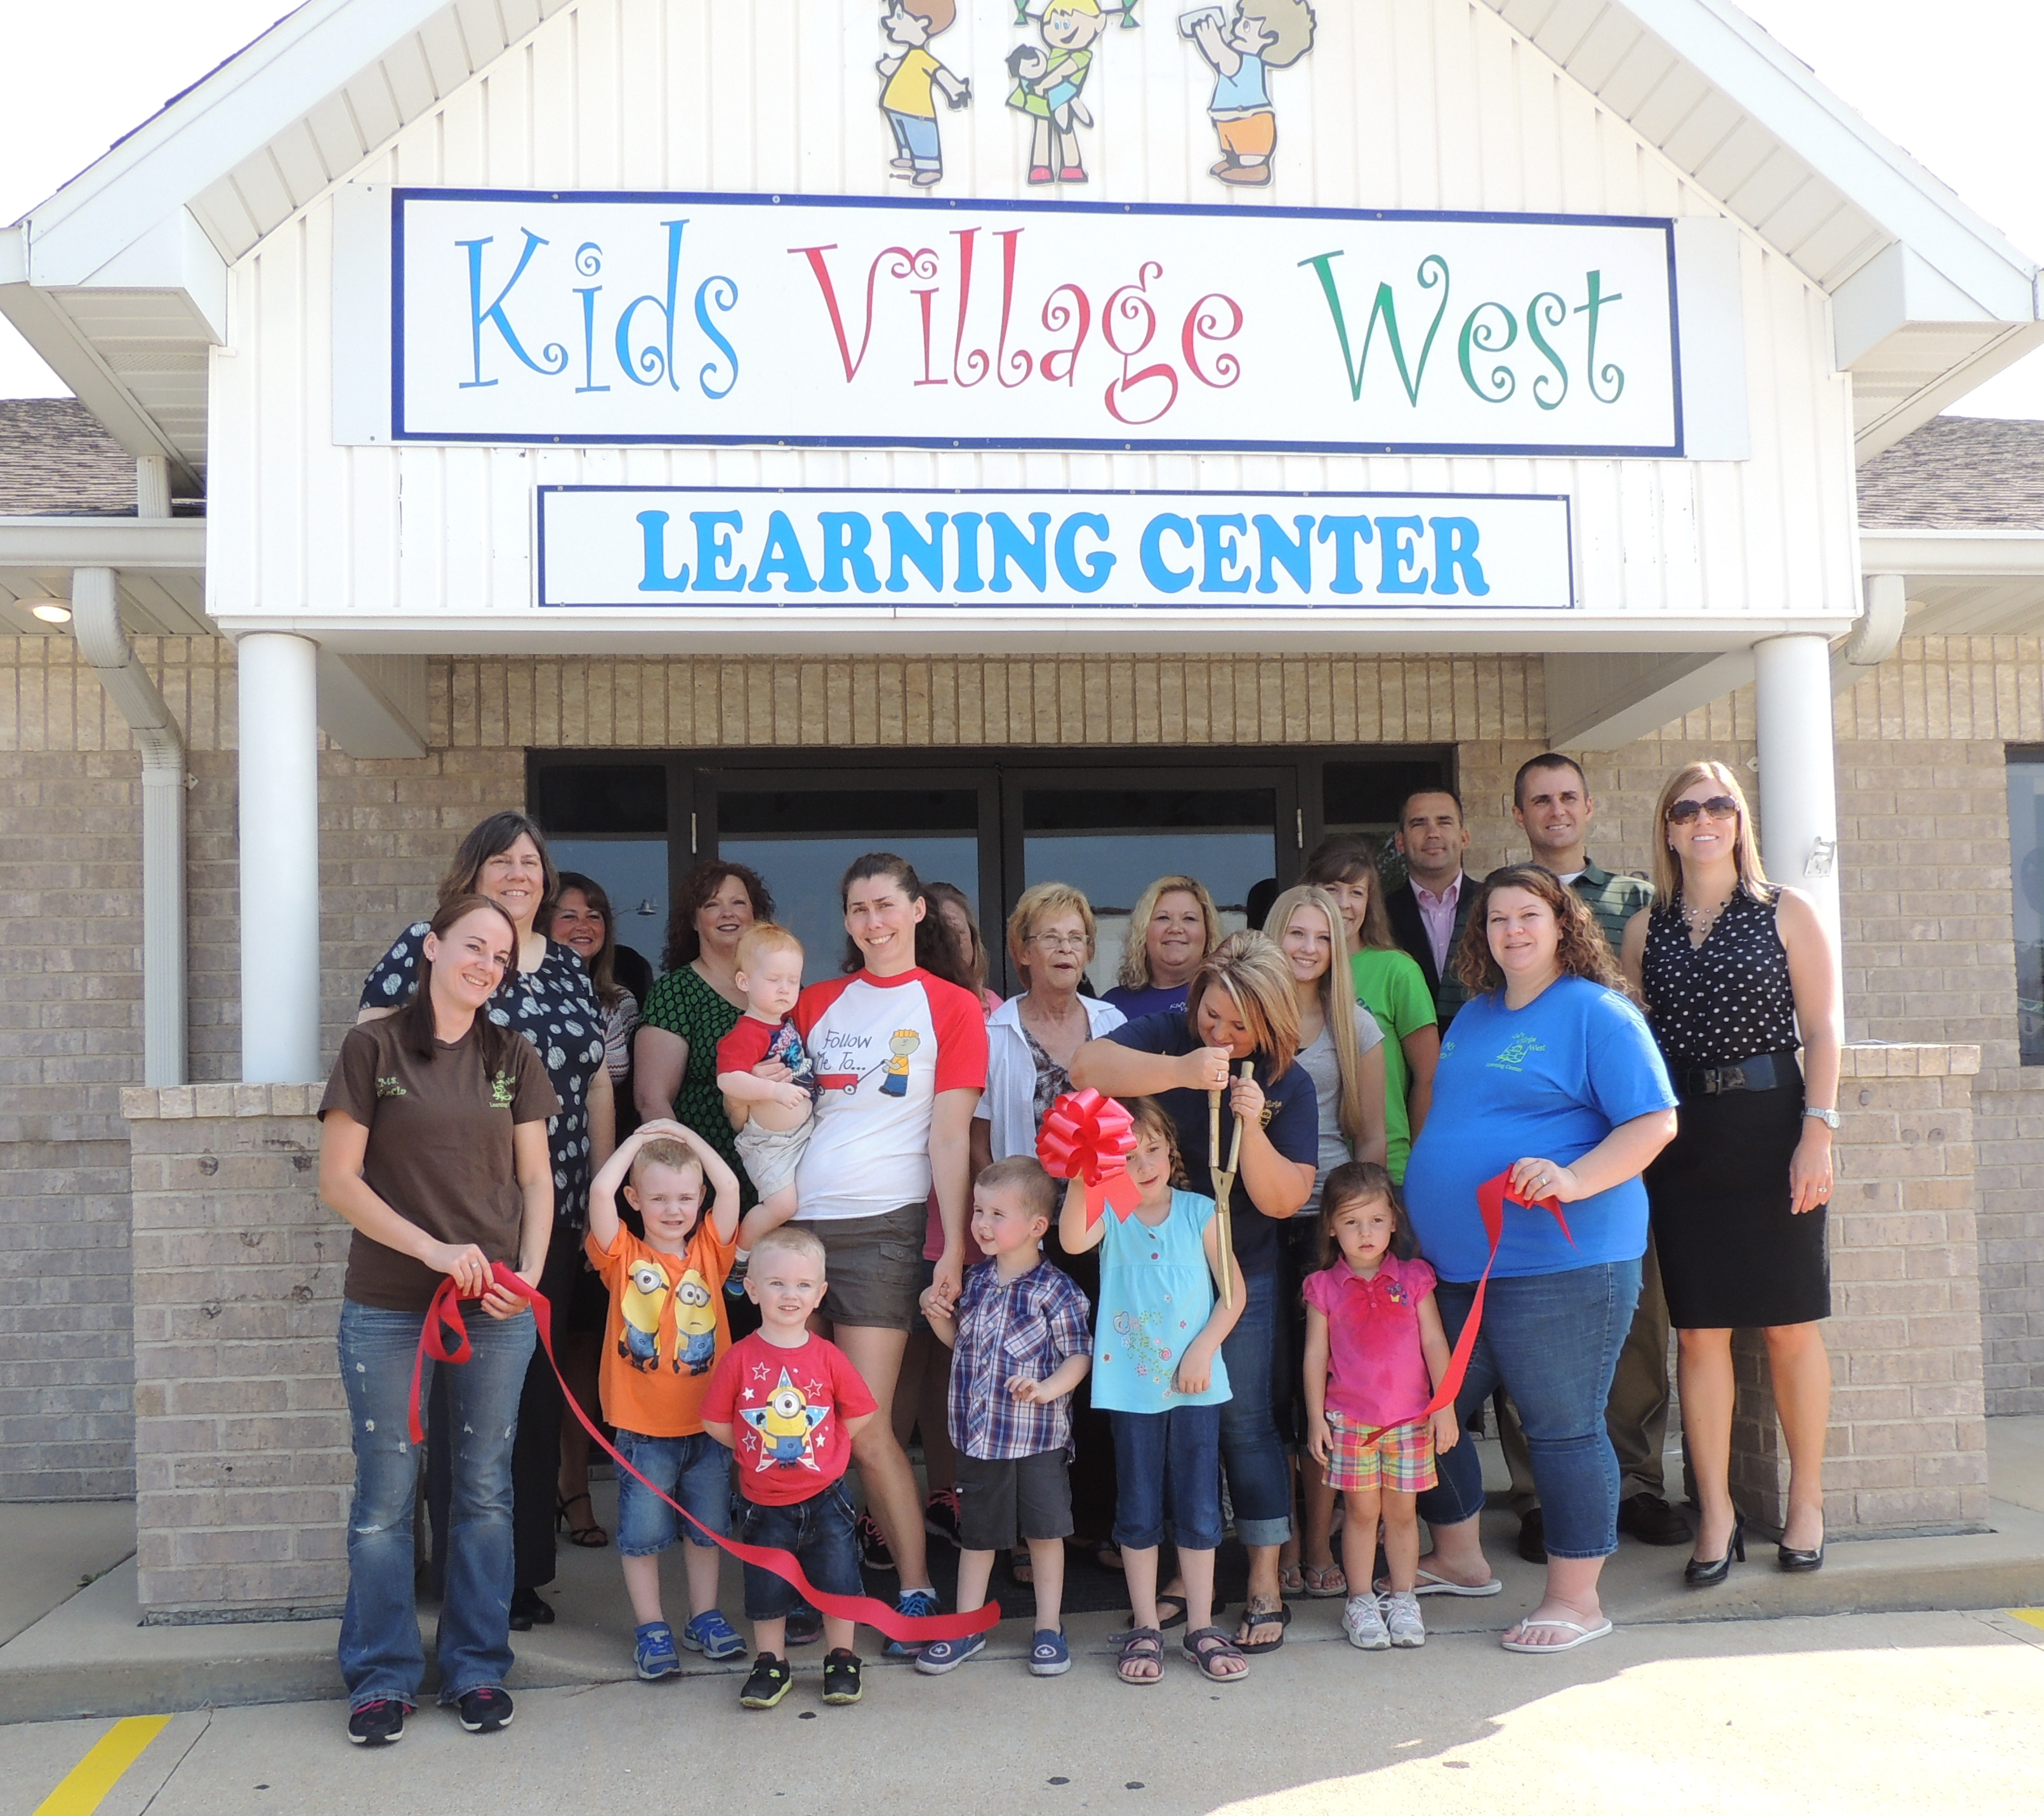 Kids Village West Learning Center